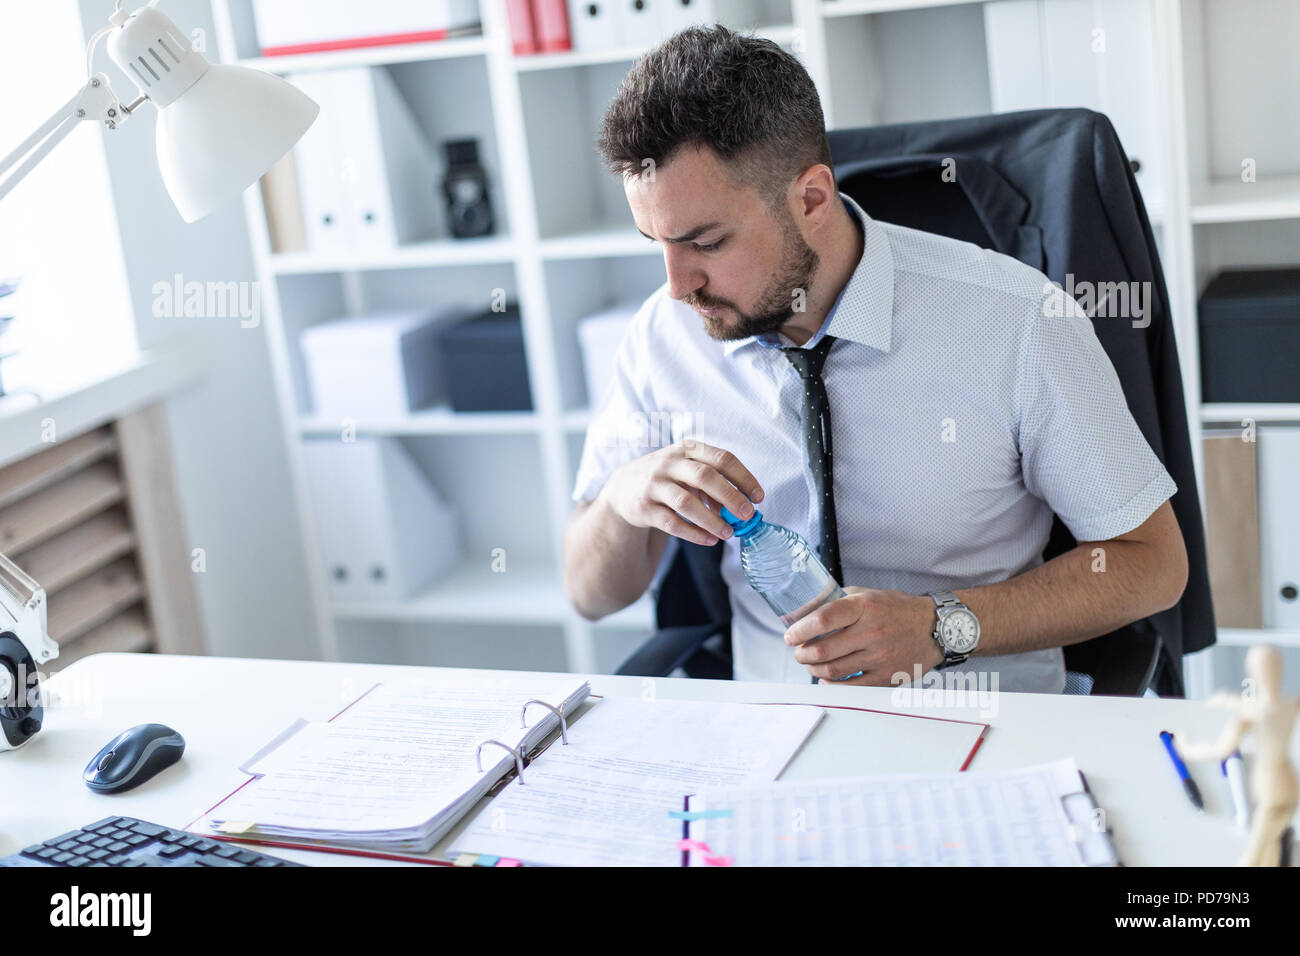 A man is sitting at a table in the office, working with documents and opening a bottle of water. Stock Photo